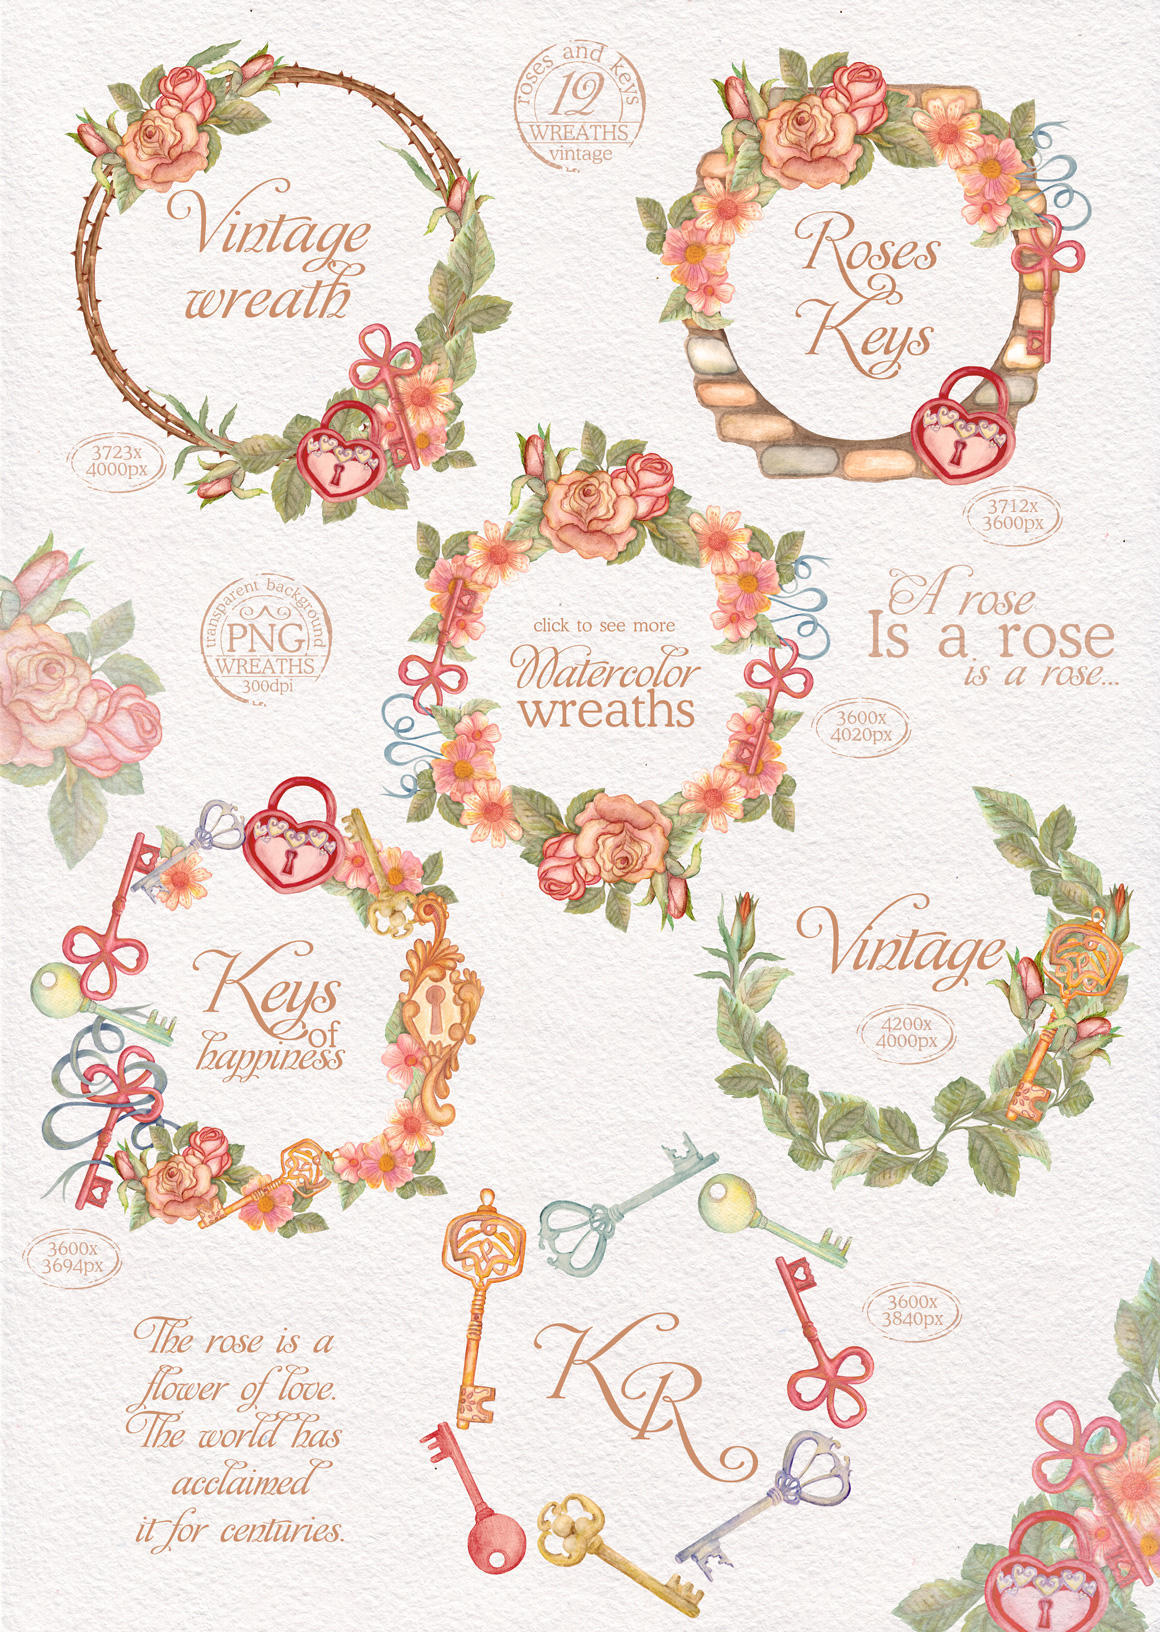 Watercolor wreaths set. Roses & keys example image 2